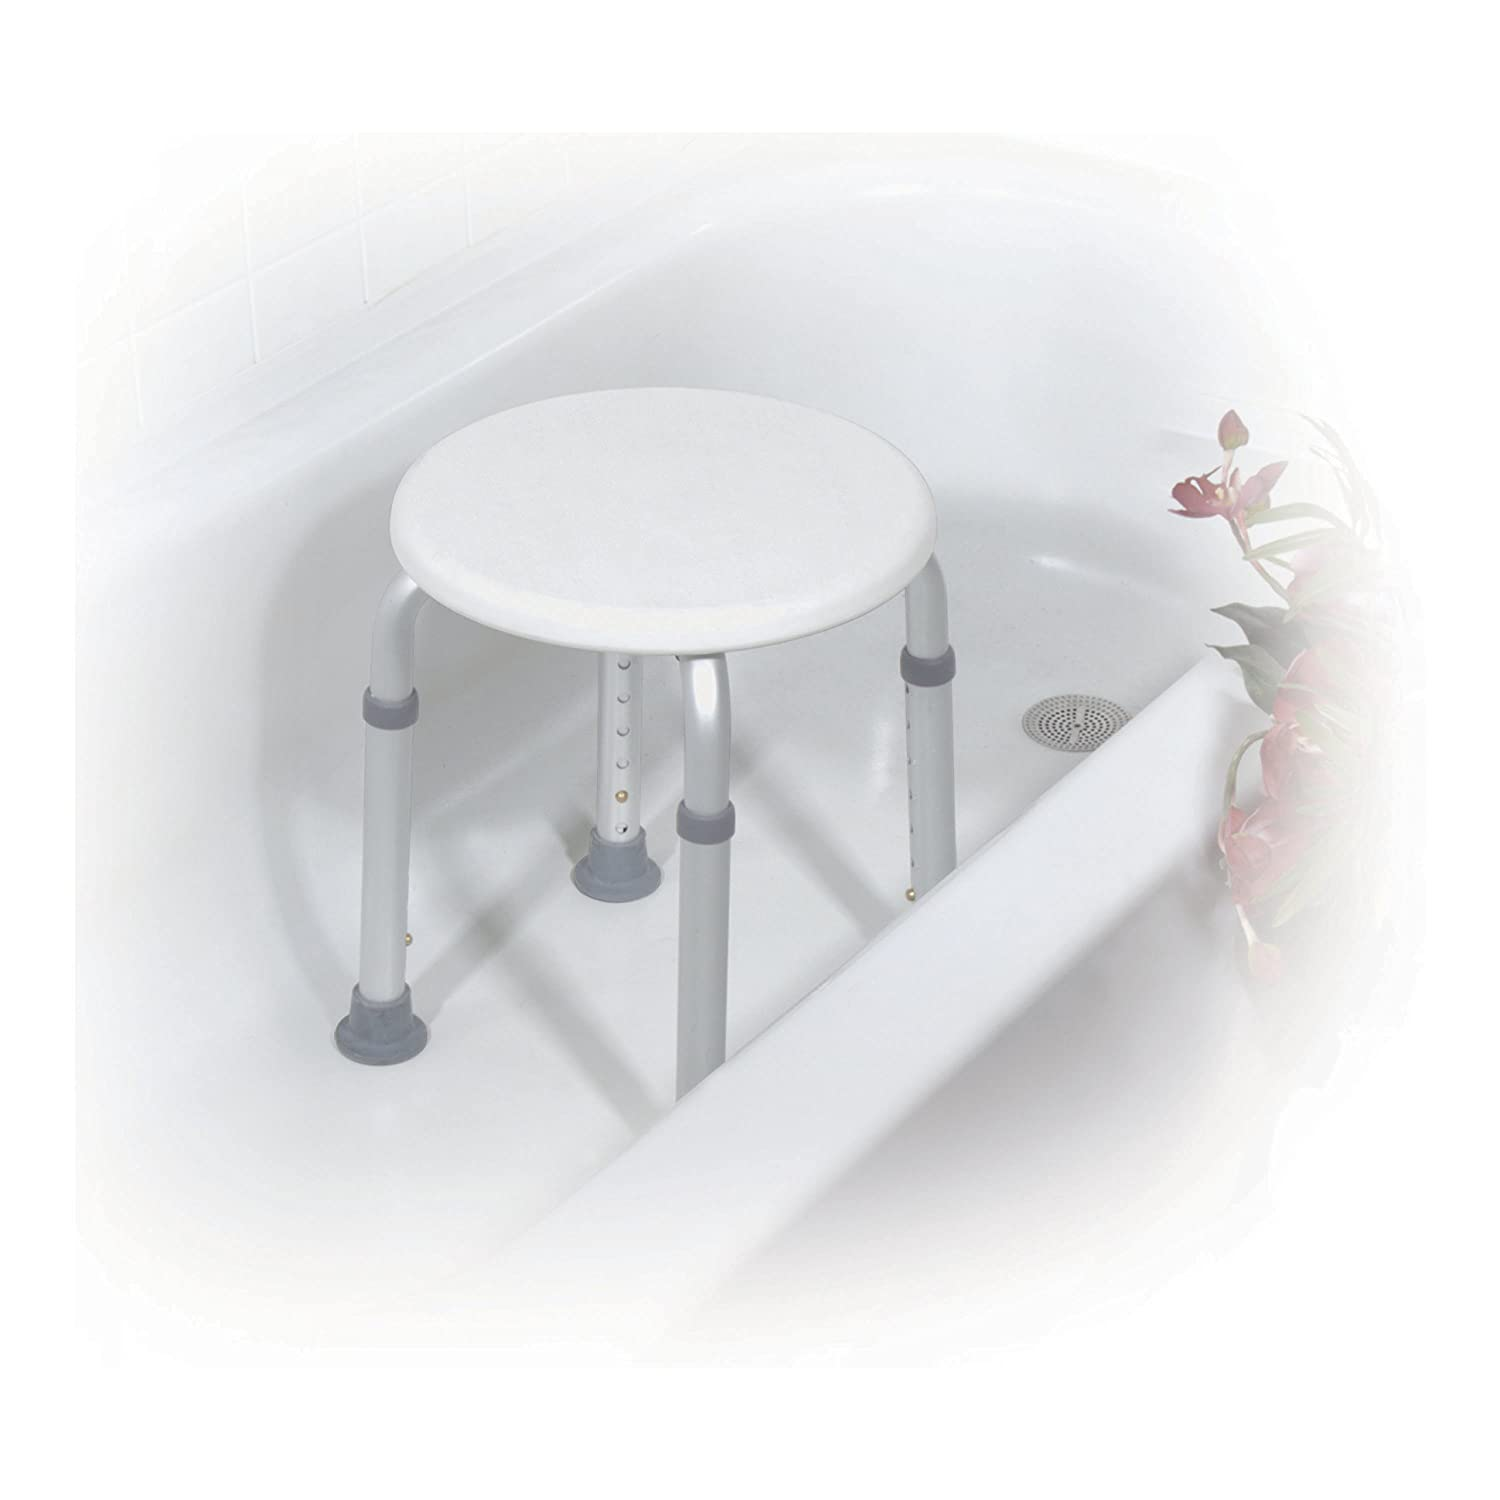 Amazoncom Drive Medical Adjustable Height Bath Stool, White Health &